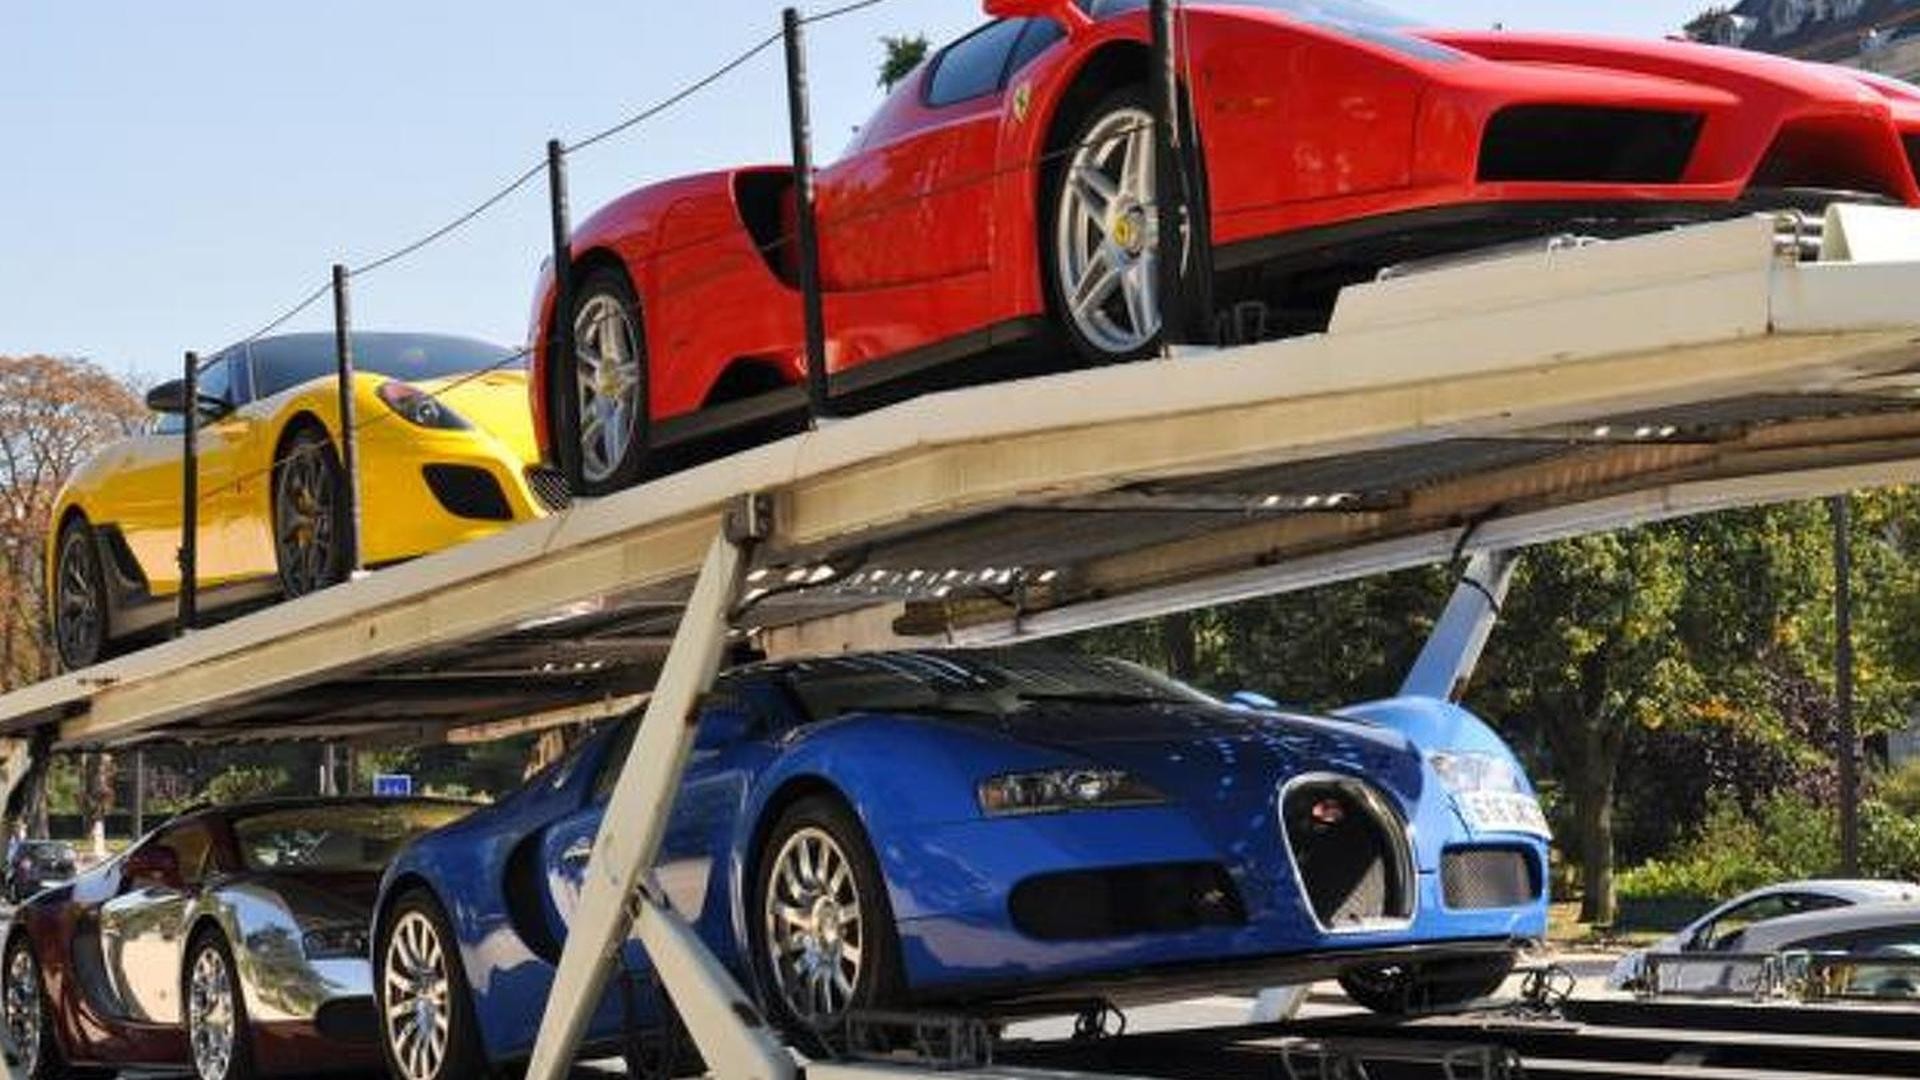 11 supercars sold for only 3.1M EUR, including two Veyrons, an Enzo and a Carrera GT